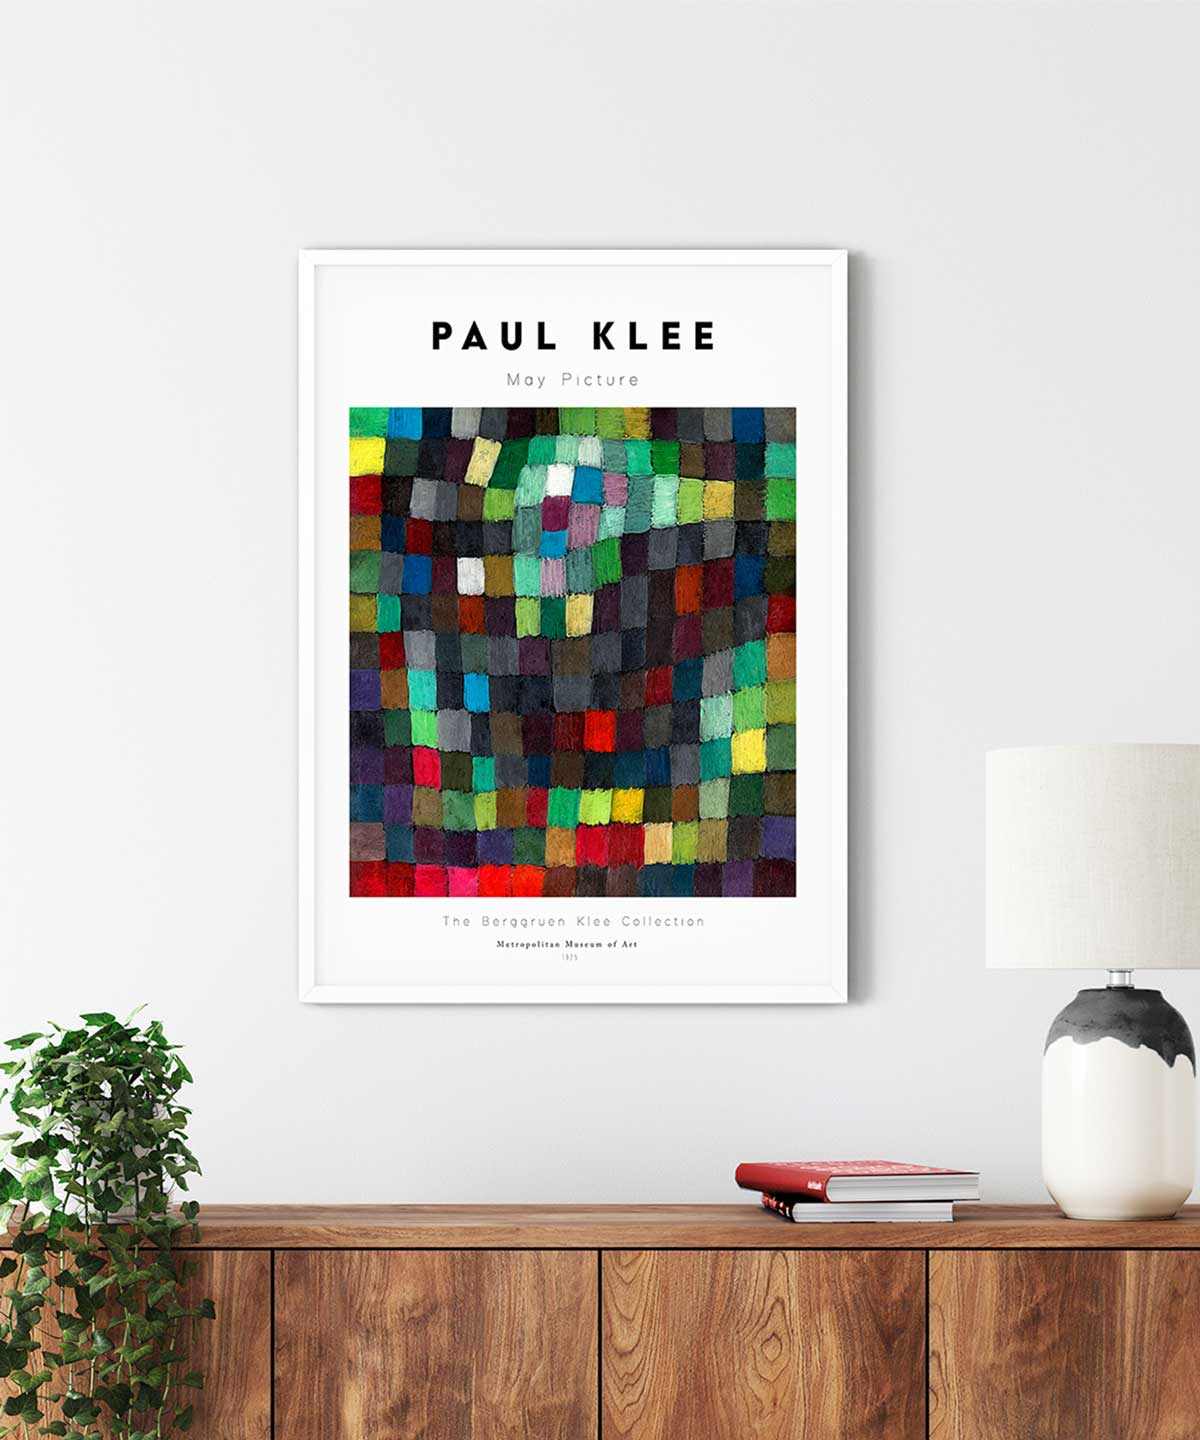 Paul-Klee-May-Picture-Poster-White-Framed-Duwart